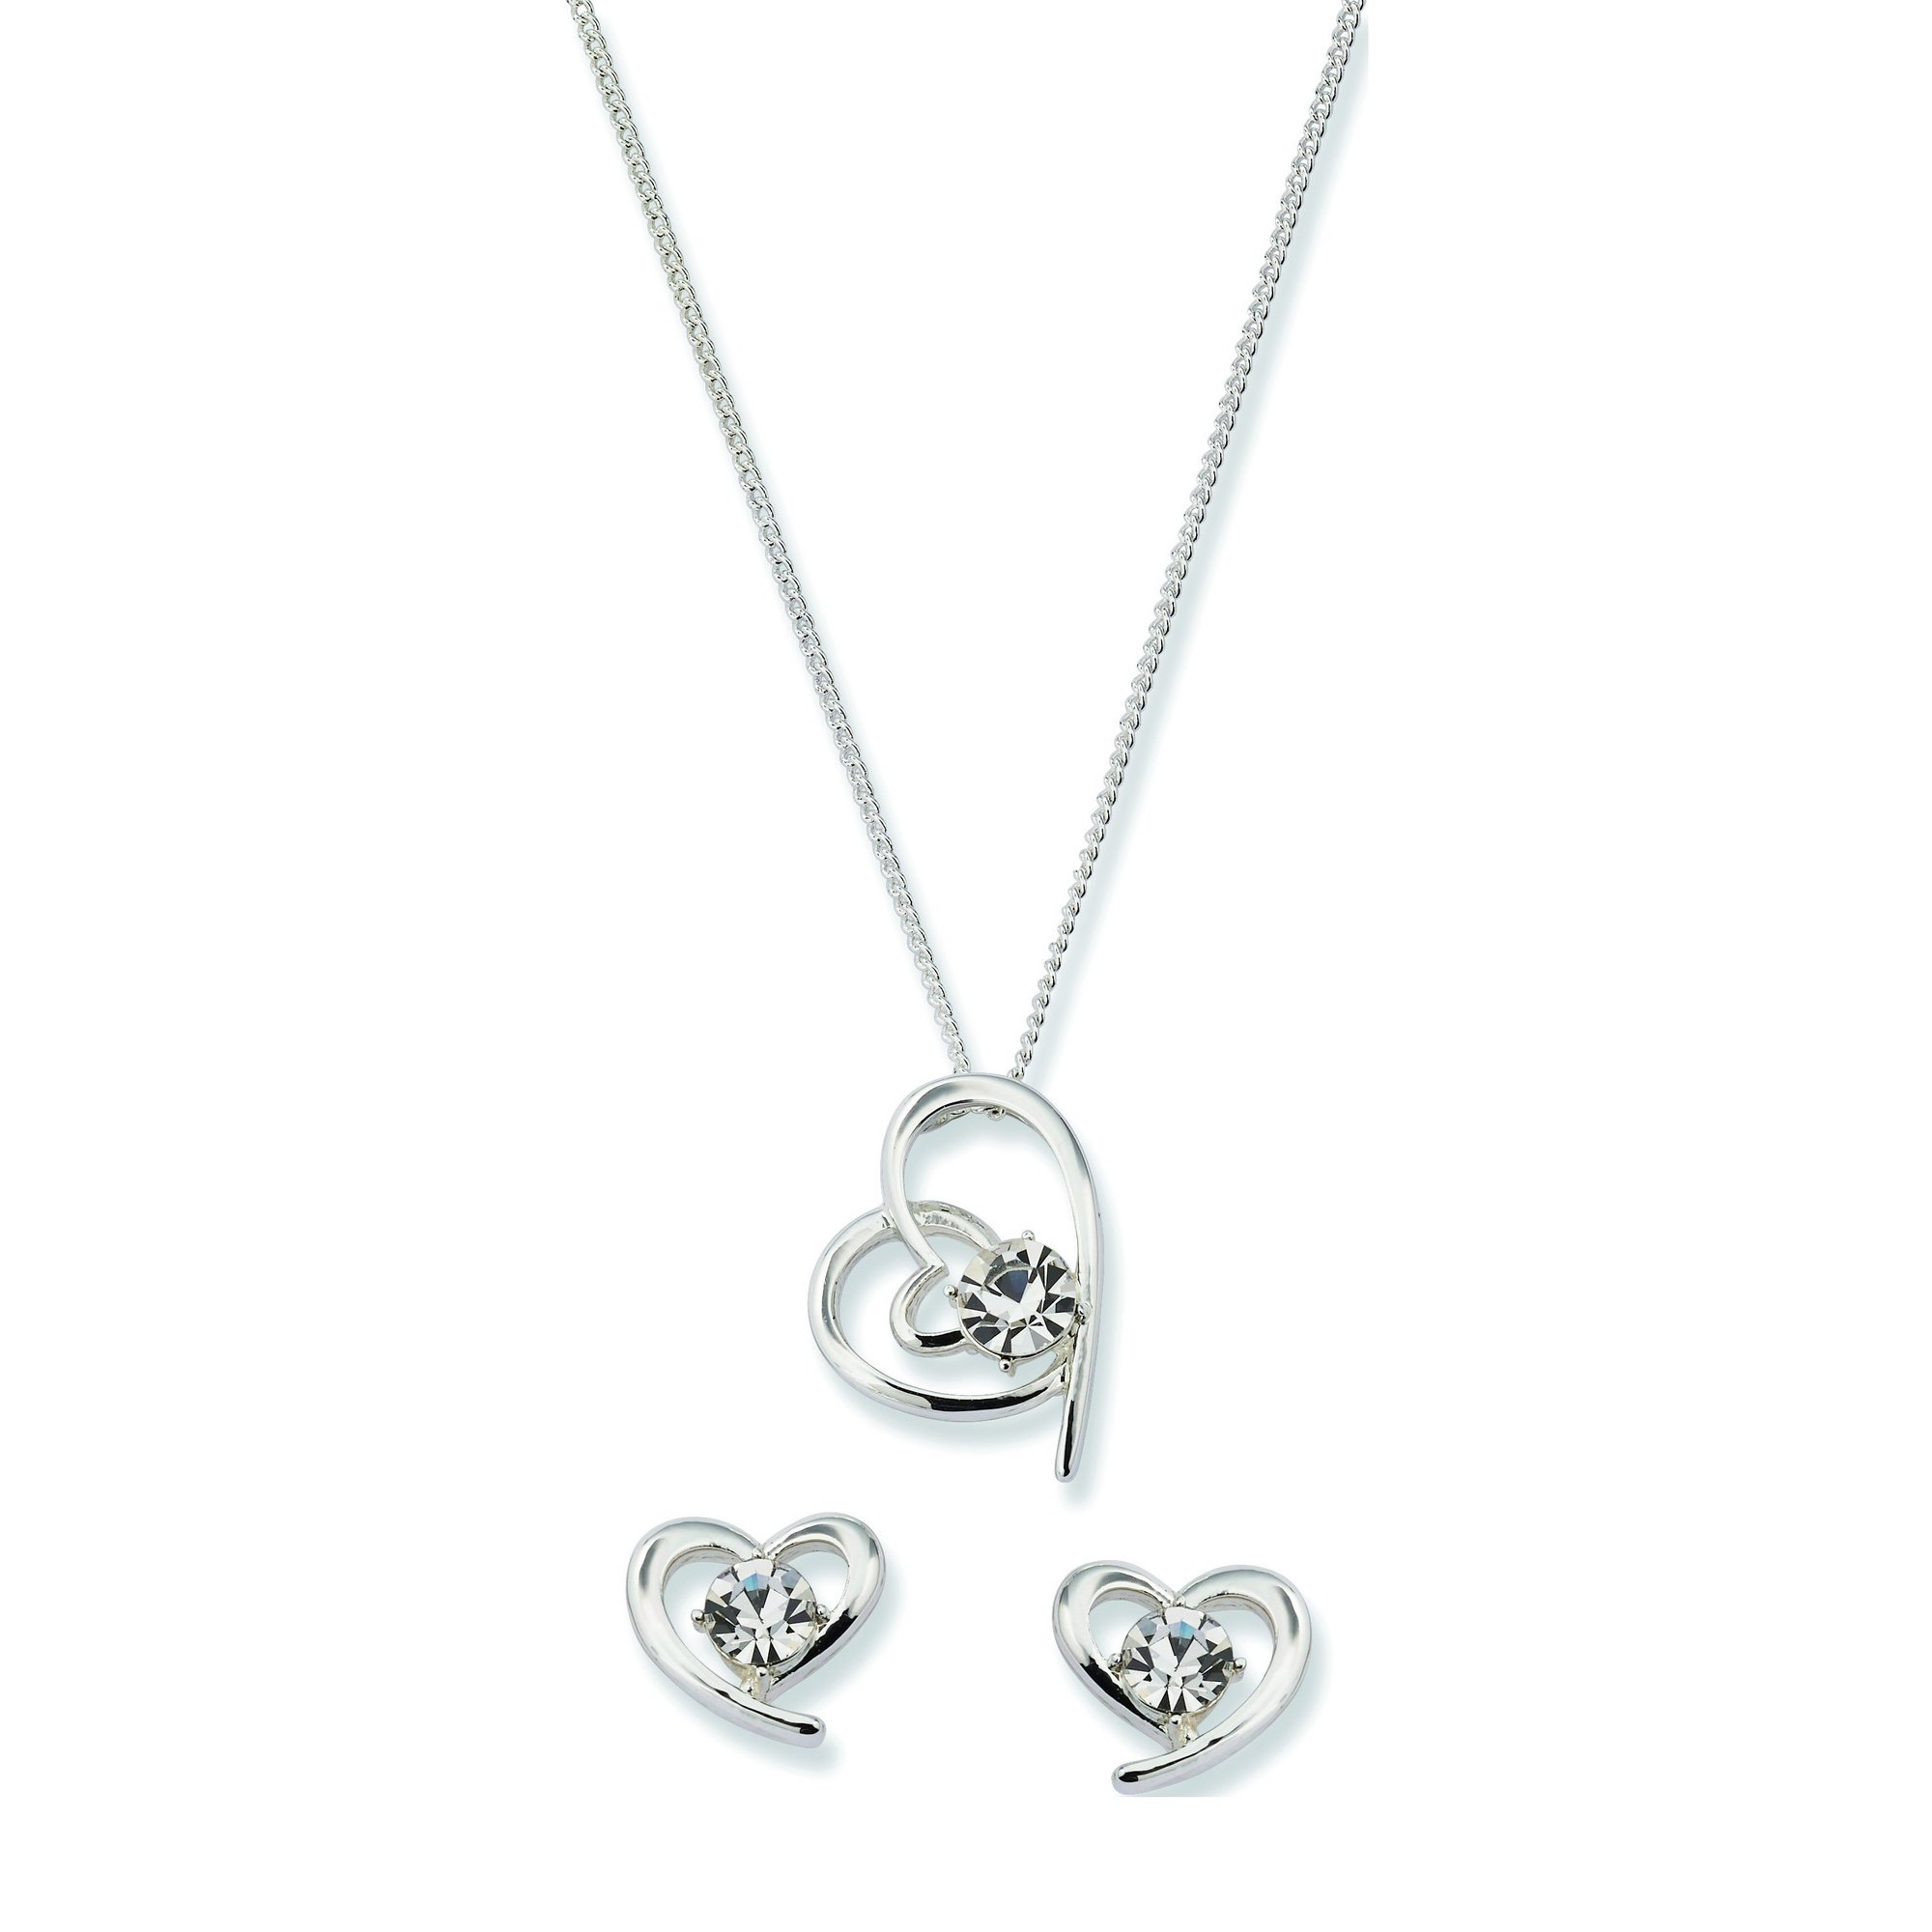 Image of Equilibrium Silver Plated Crystal Heart Necklace and Earrings Set